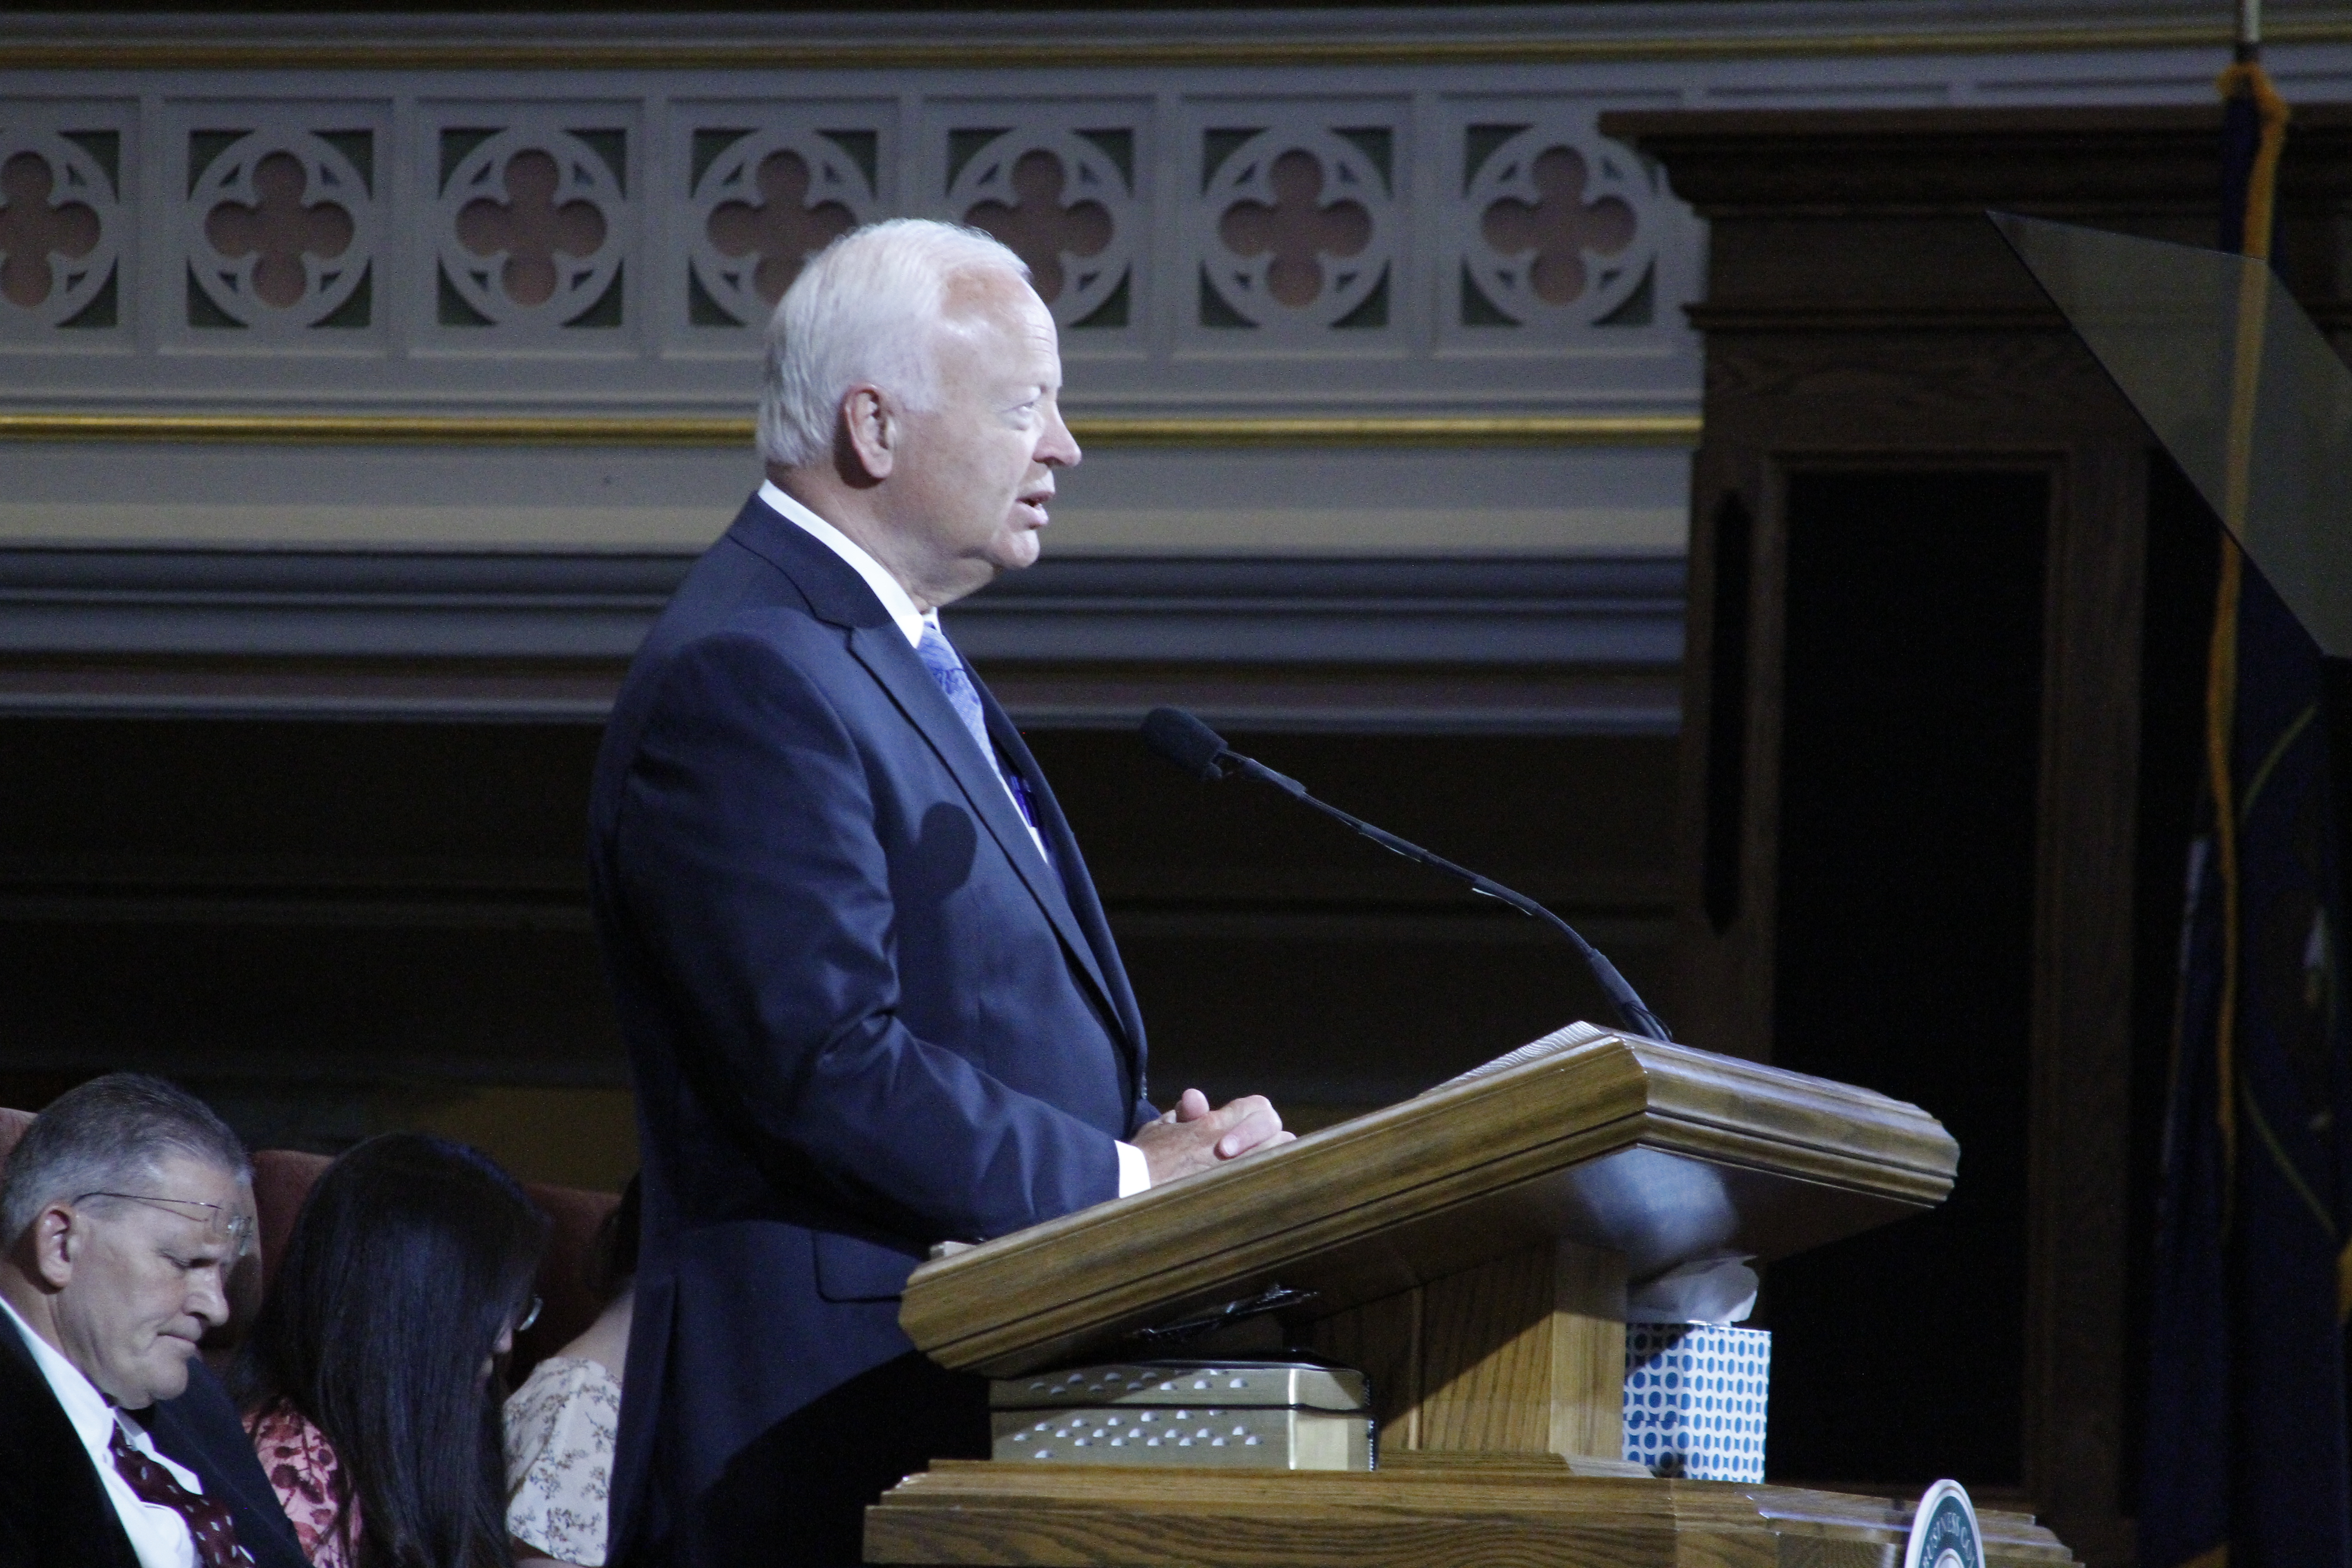 Elder Kent F. Richards, emeritus General Authority Seventy, speaks to LDSBC students in a devotional address on Tuesday, June 11, 2019.